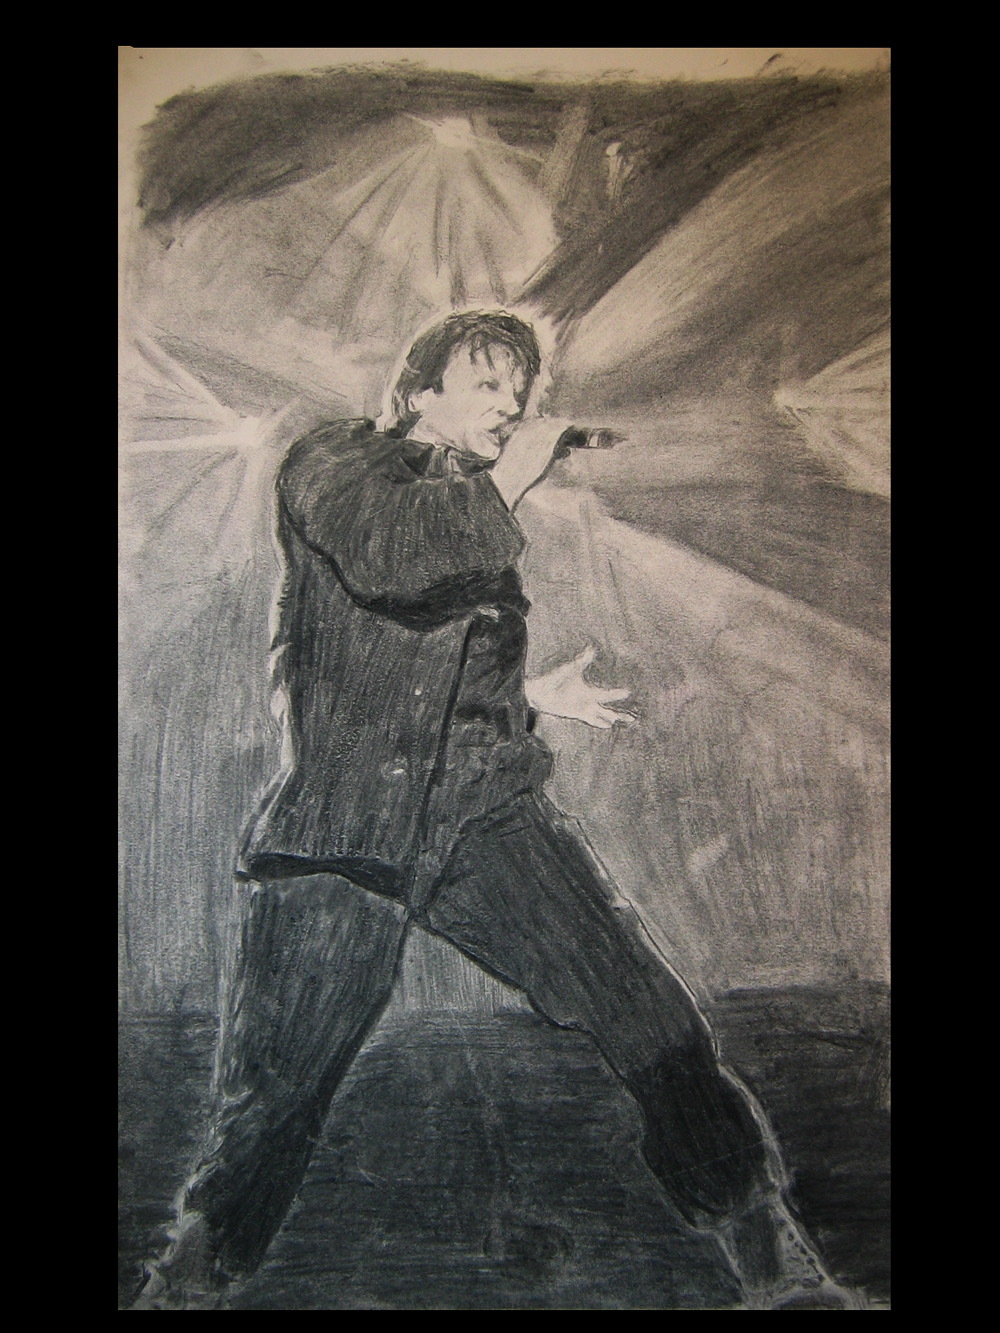 Bruce Dickinson - Charcoal